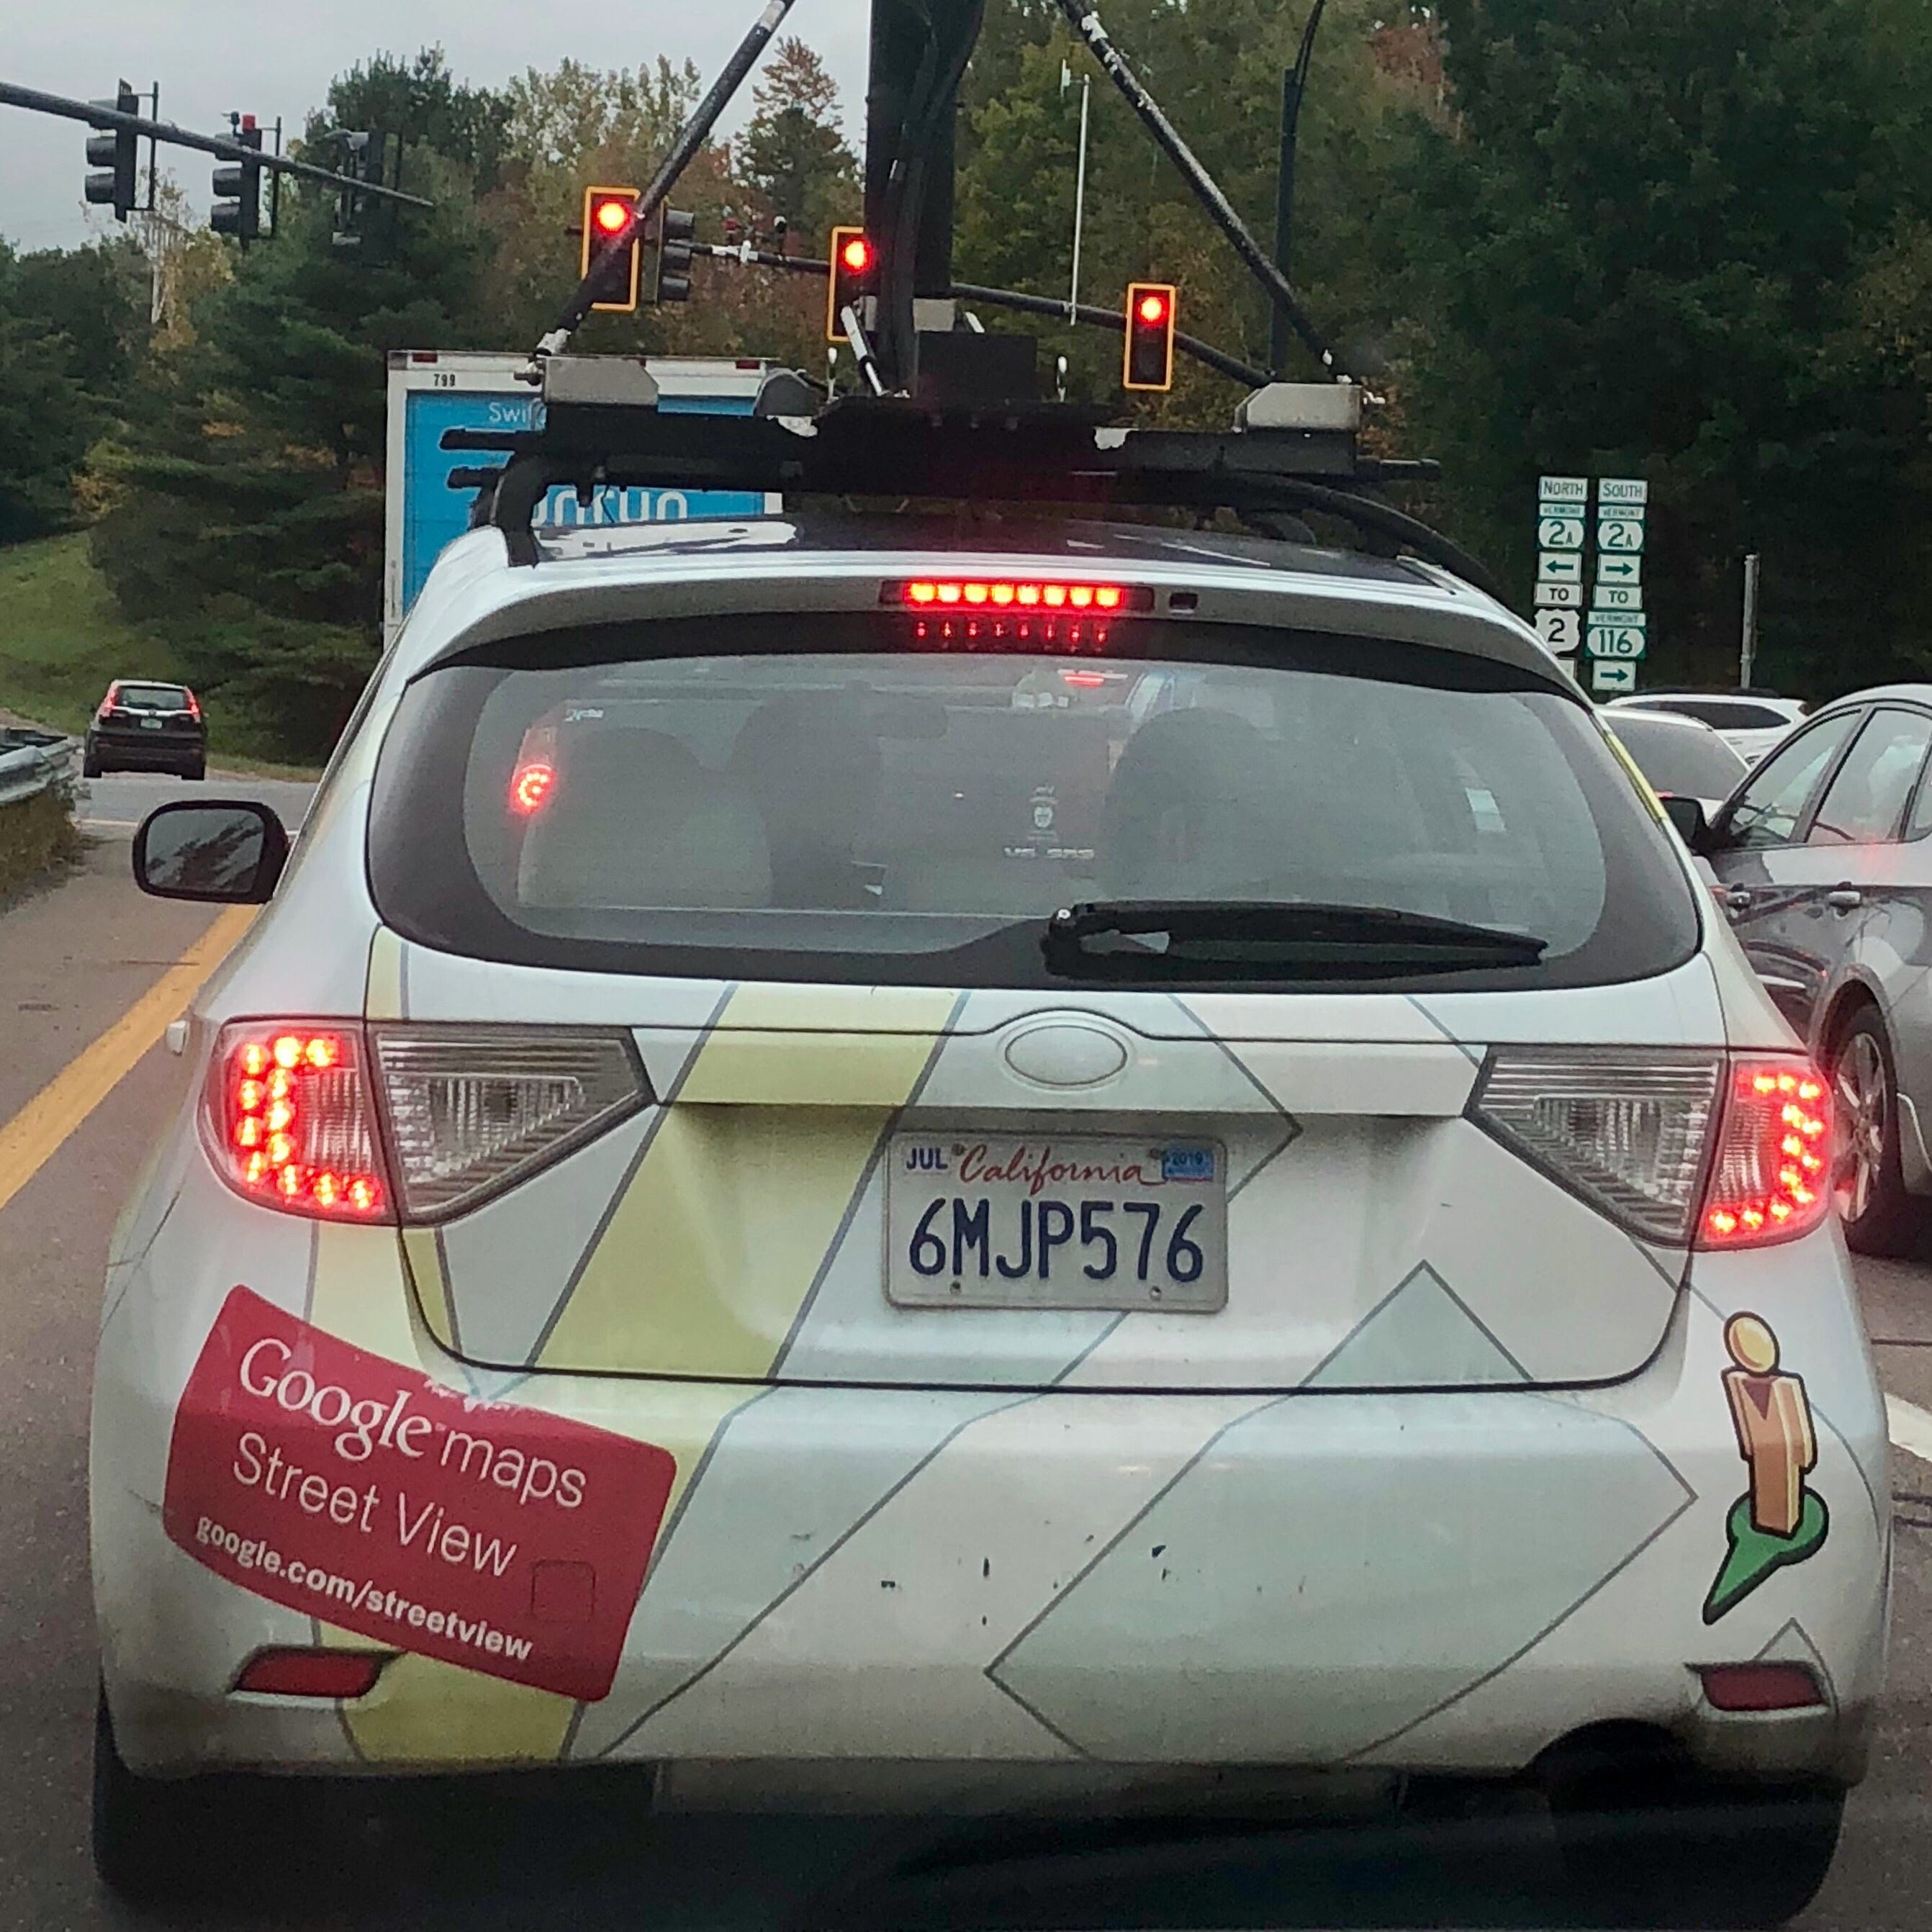 Google's Street View car is back in Vermont. Here's where it's been spotted.